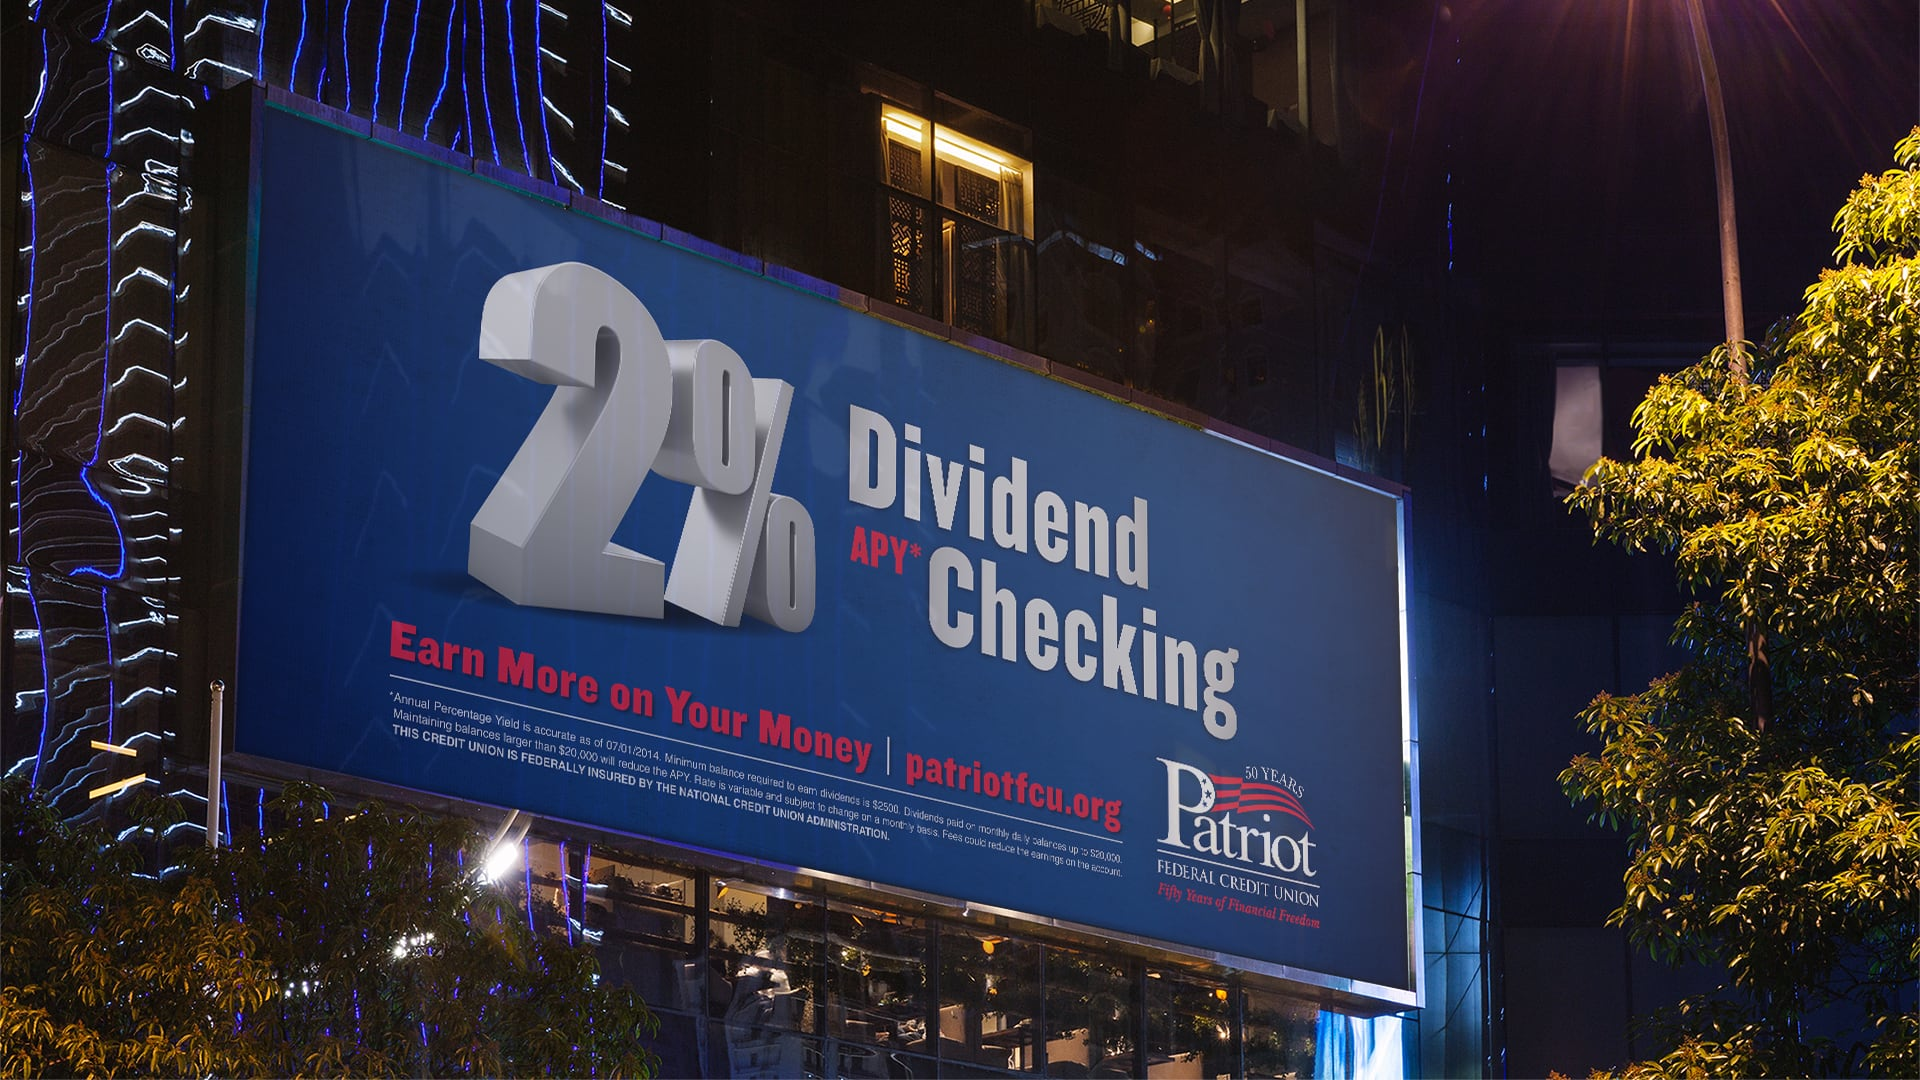 Dividend checking campaign billboard